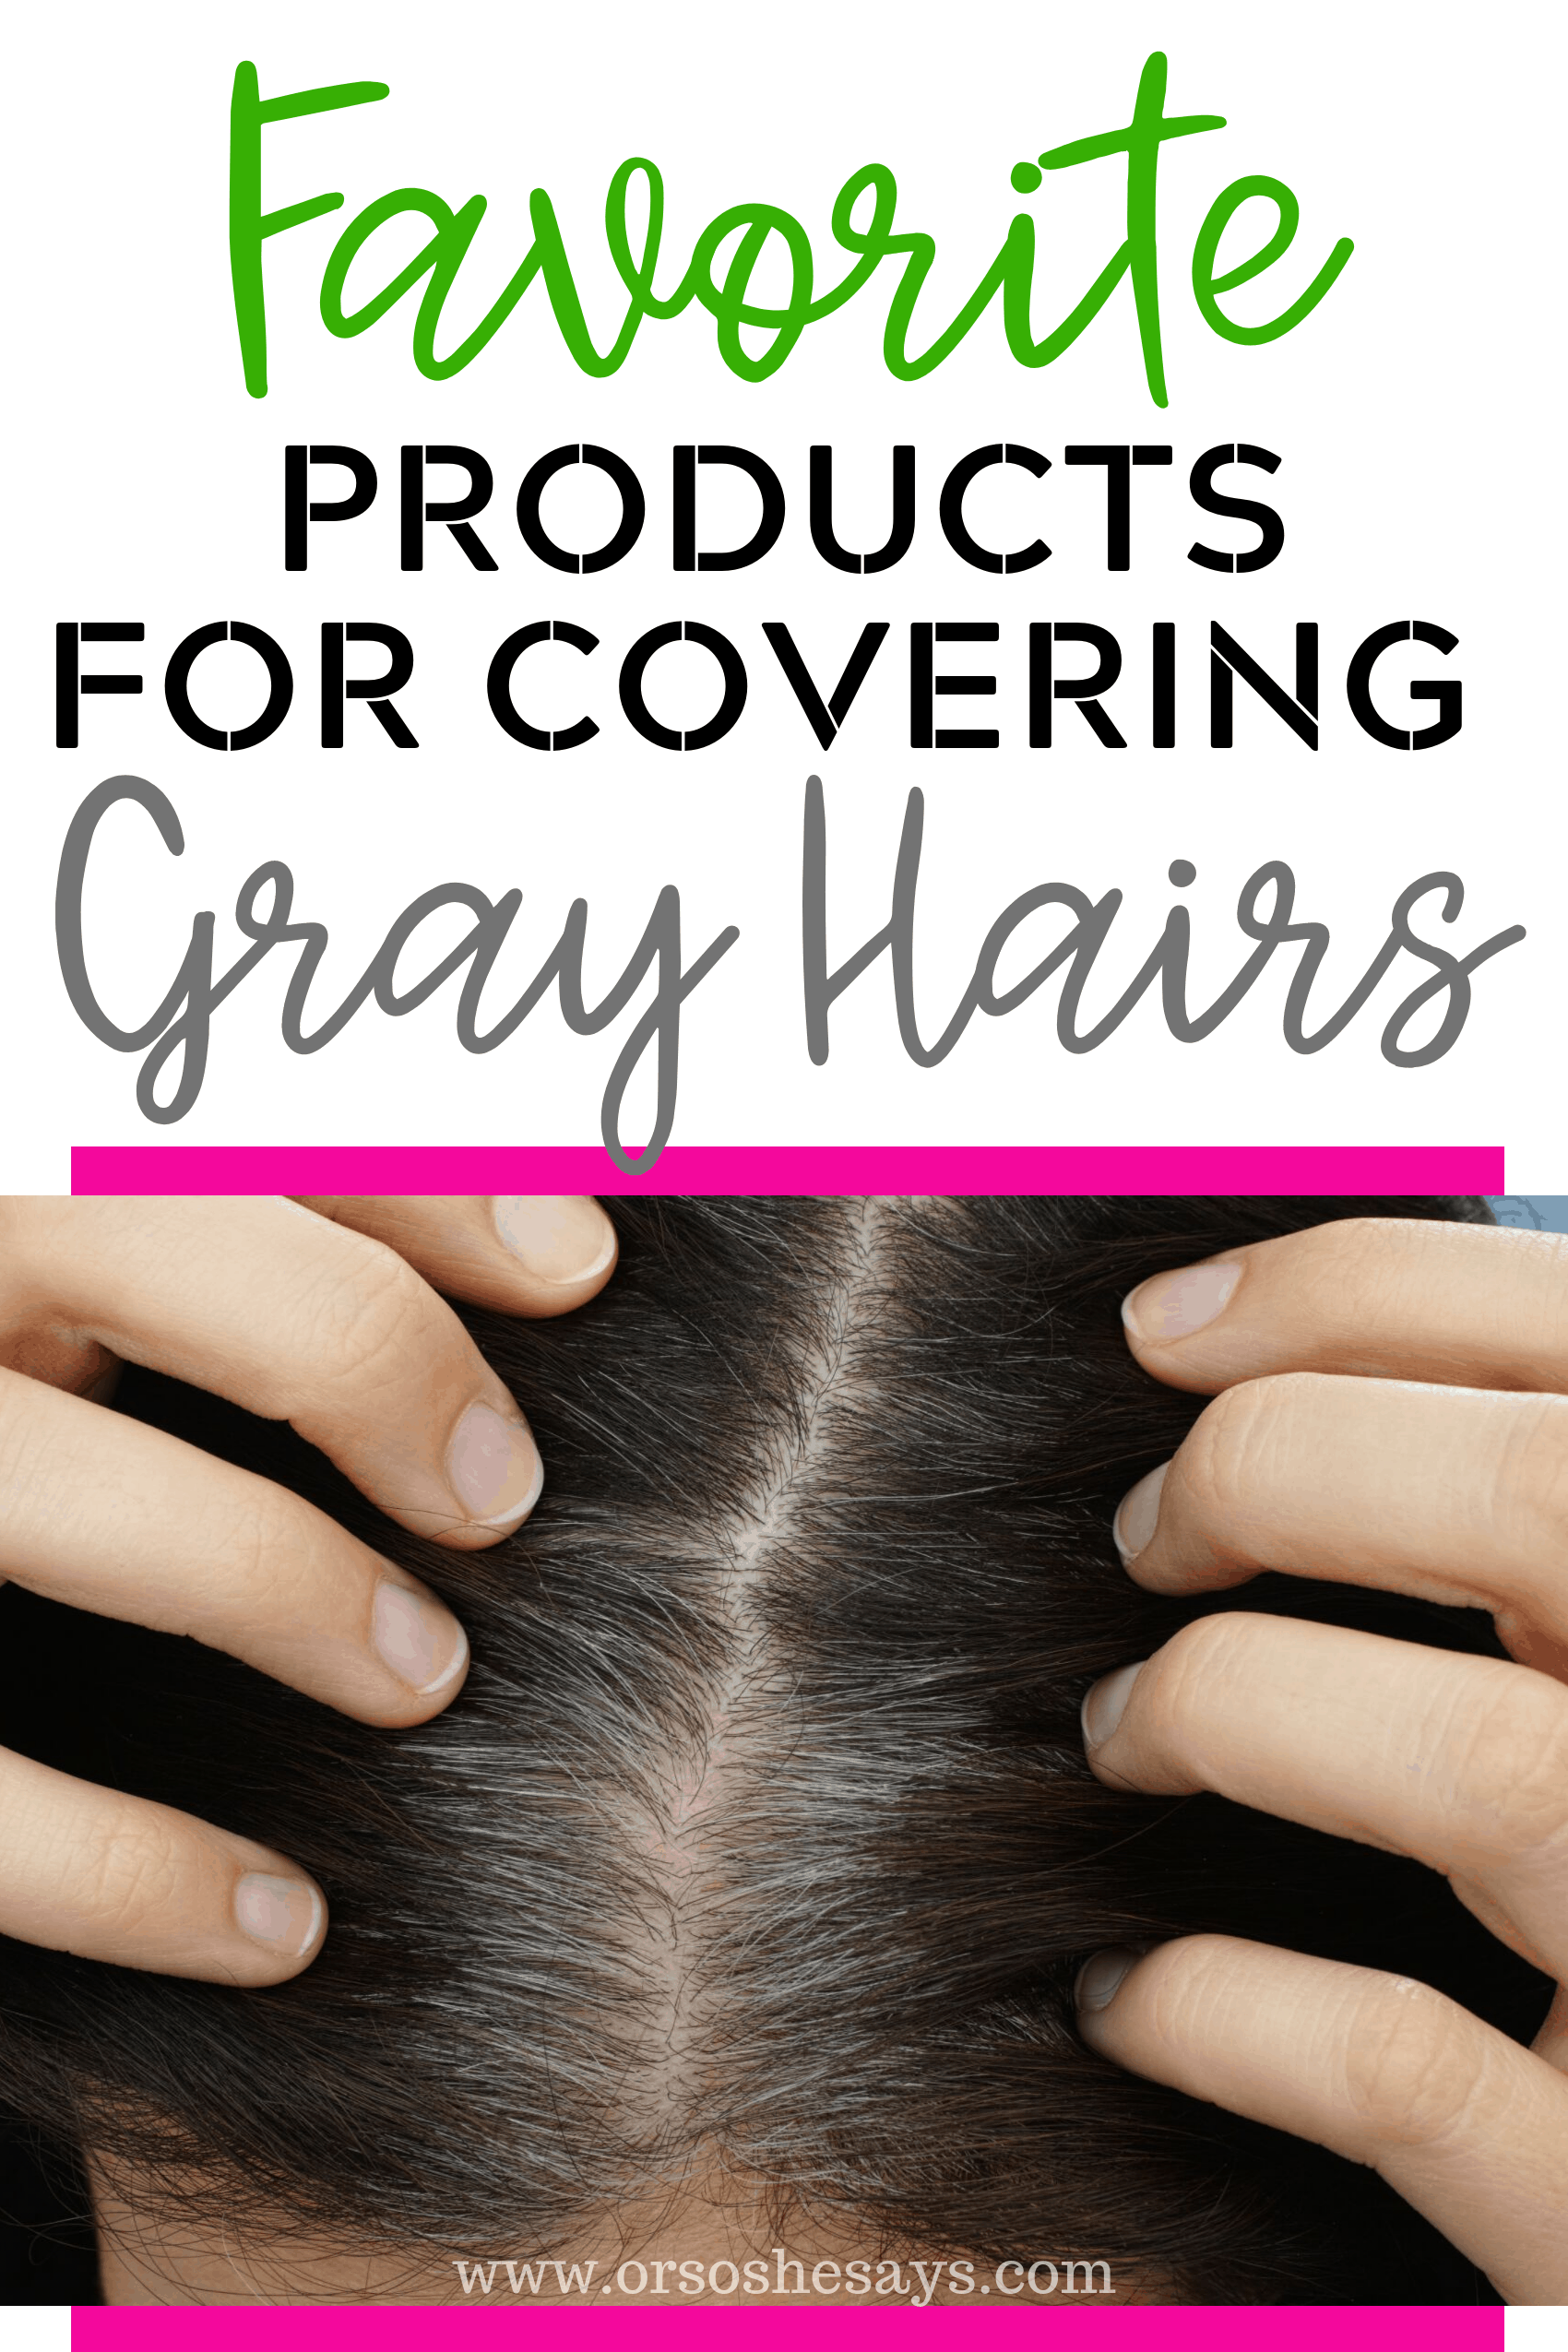 products for covering gray hair